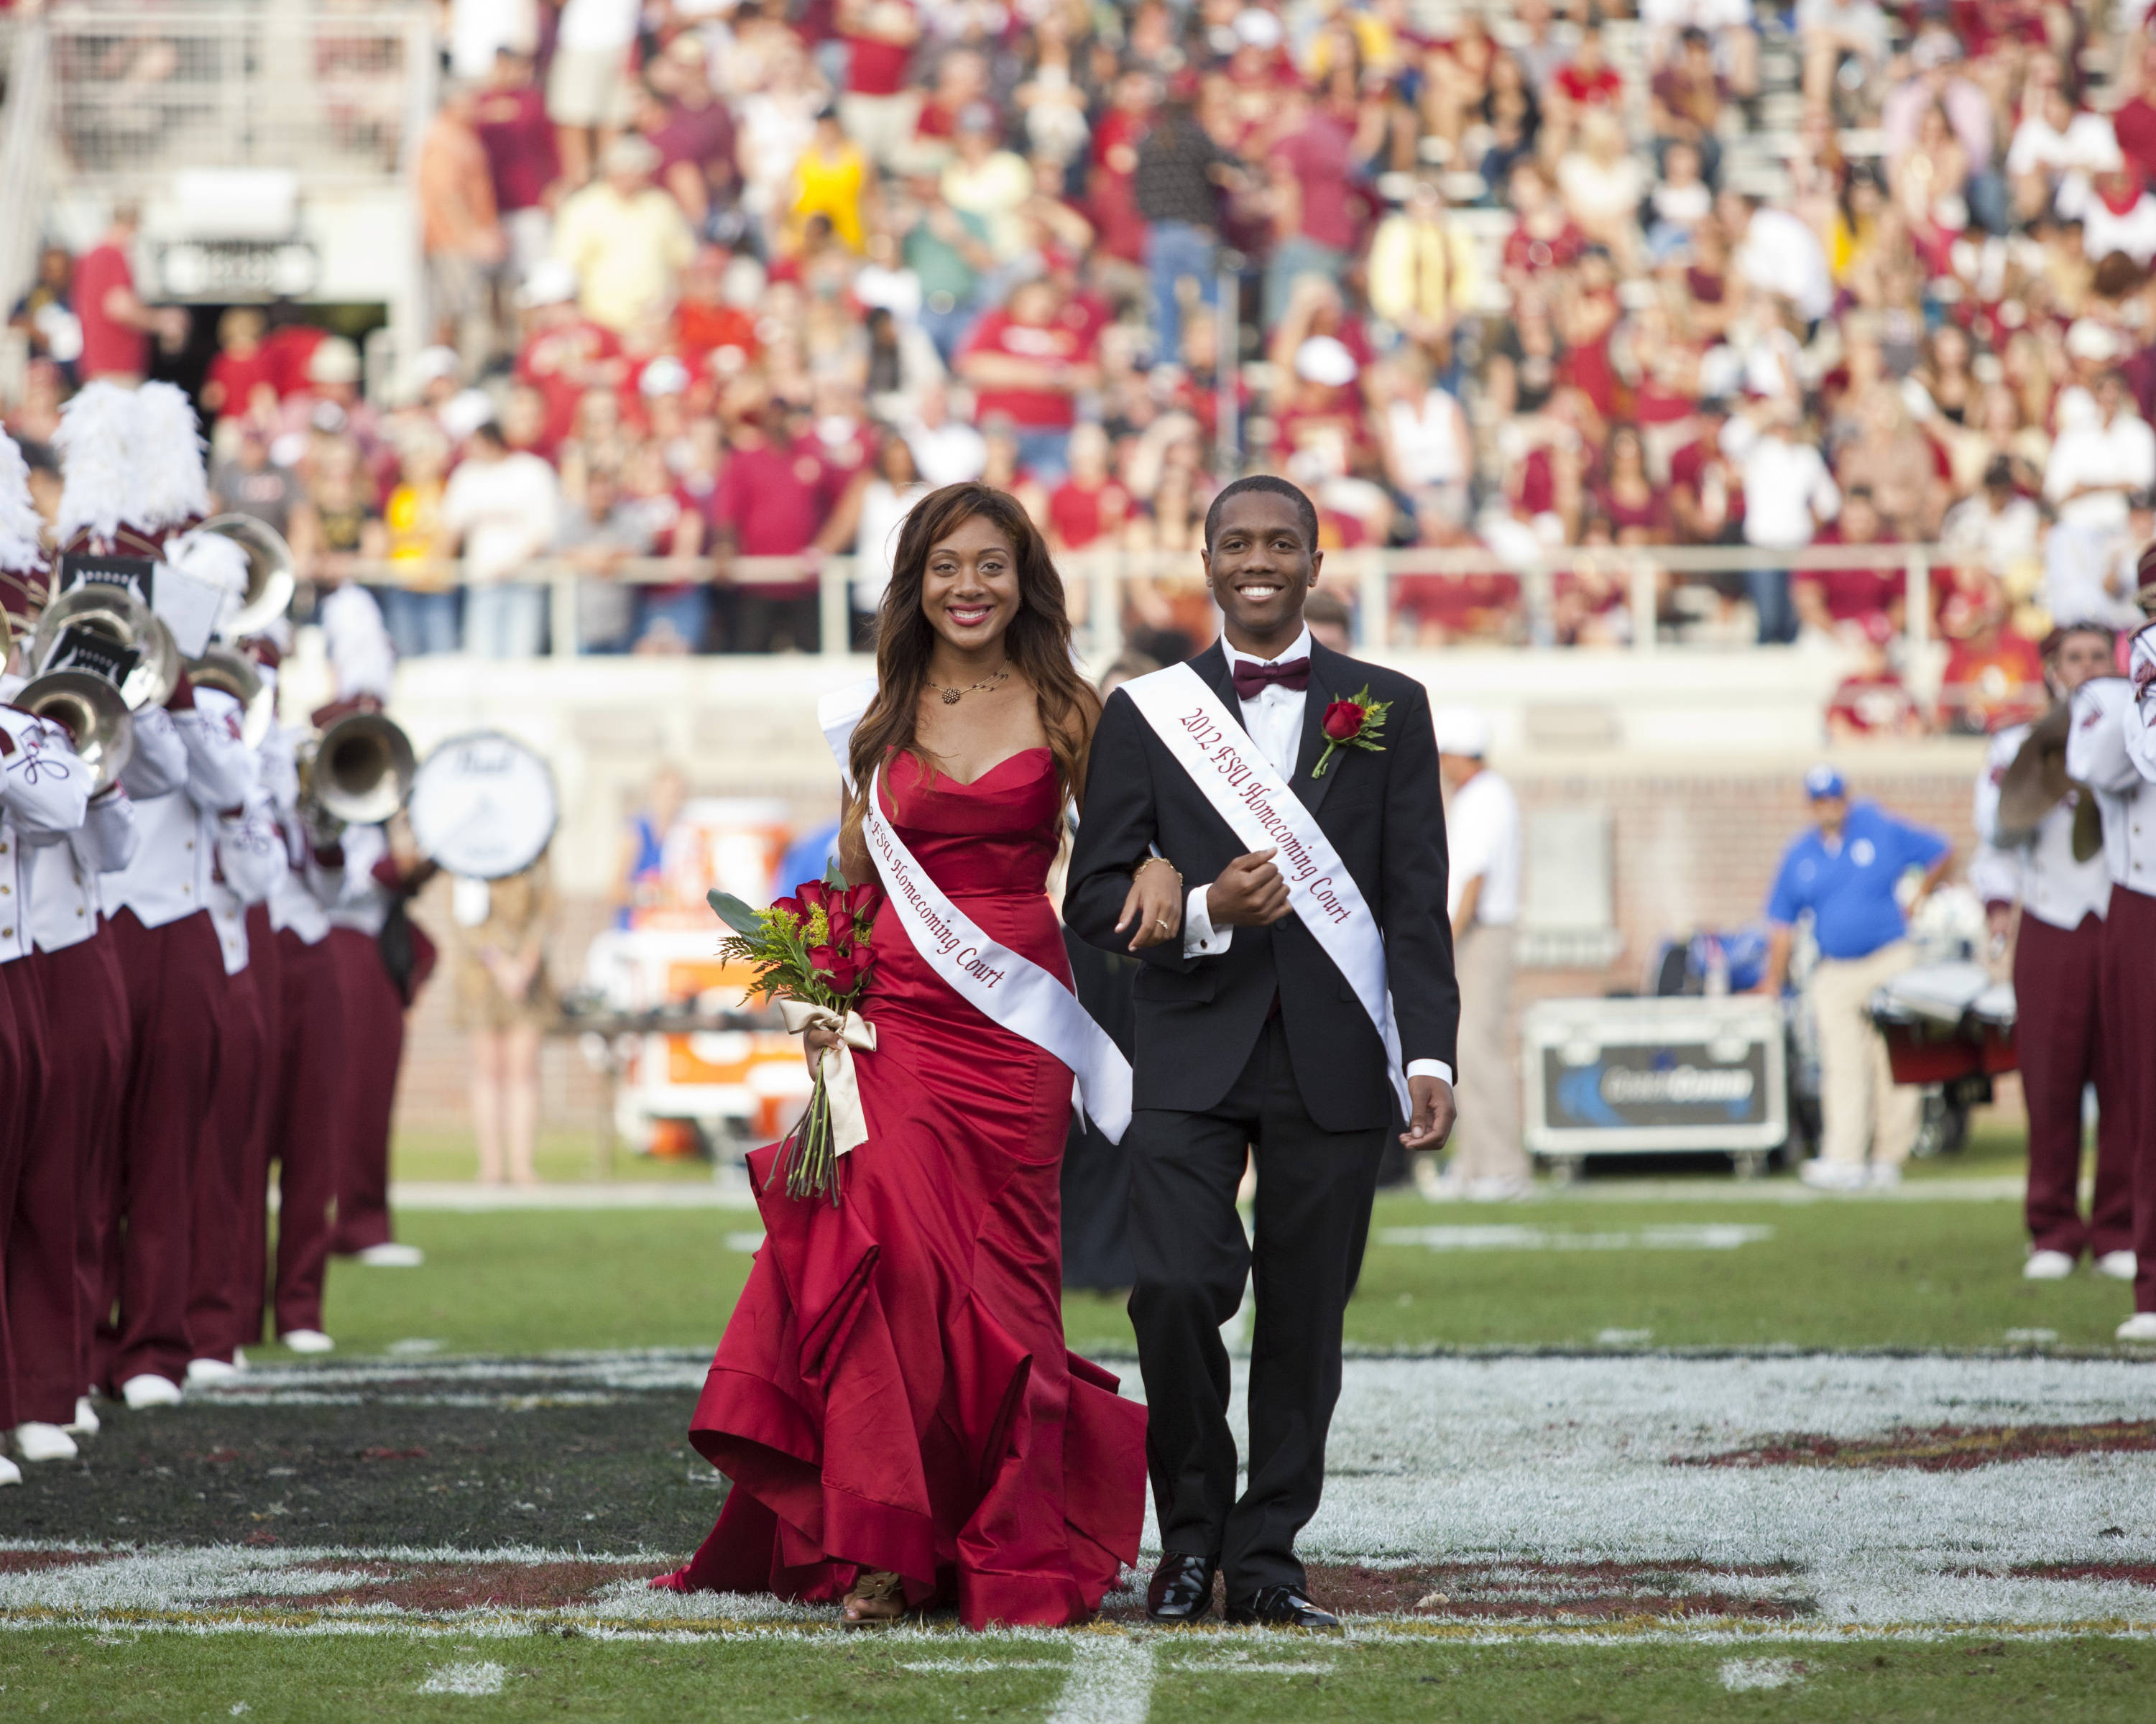 FSU's 2012 Homecoming Court takes the field at halftime during the football game against Duke on October 27, 2012.